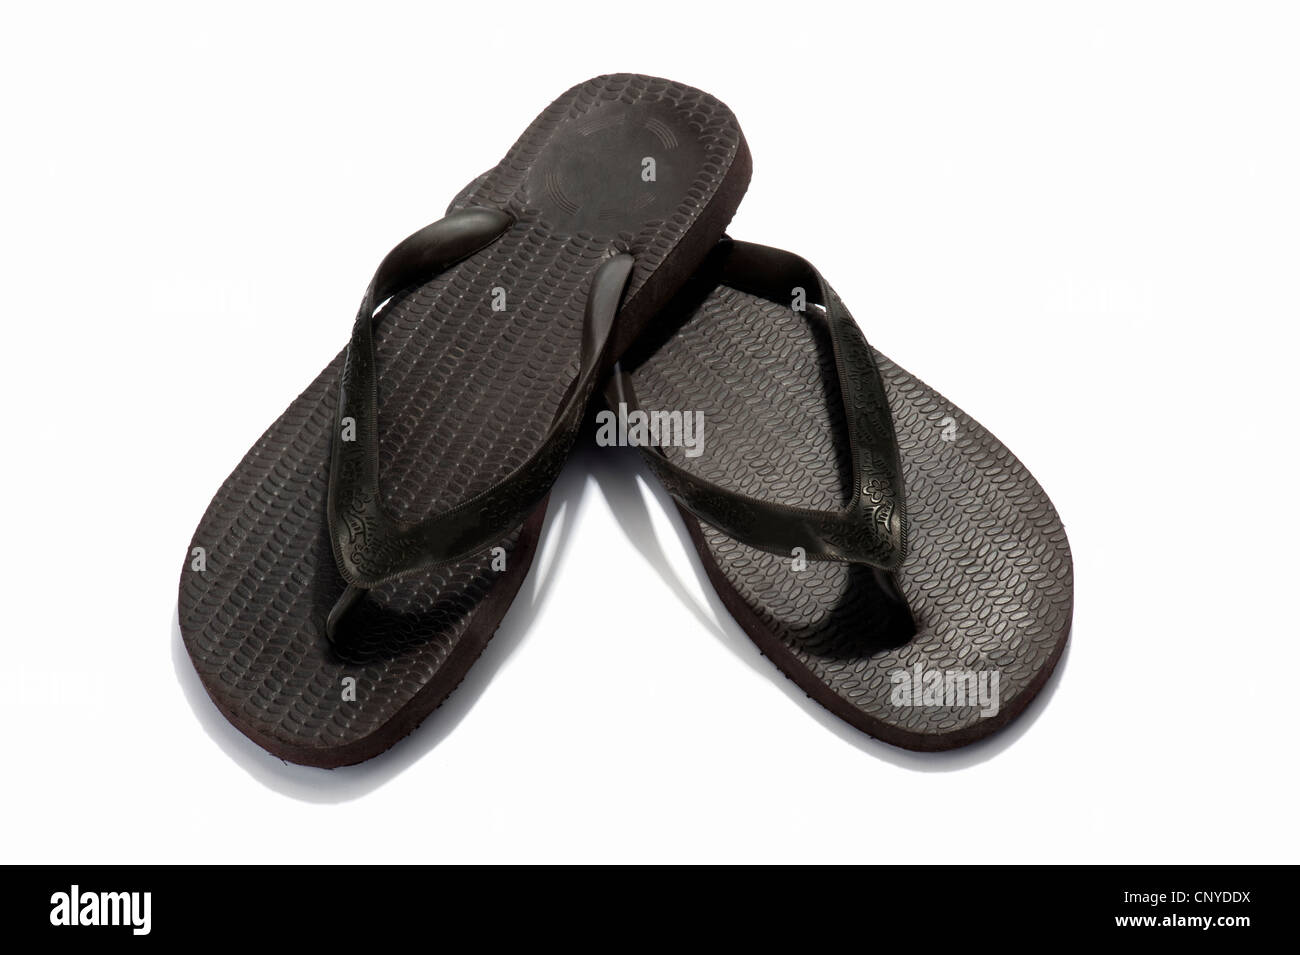 A pair of black flip flops - Stock Image